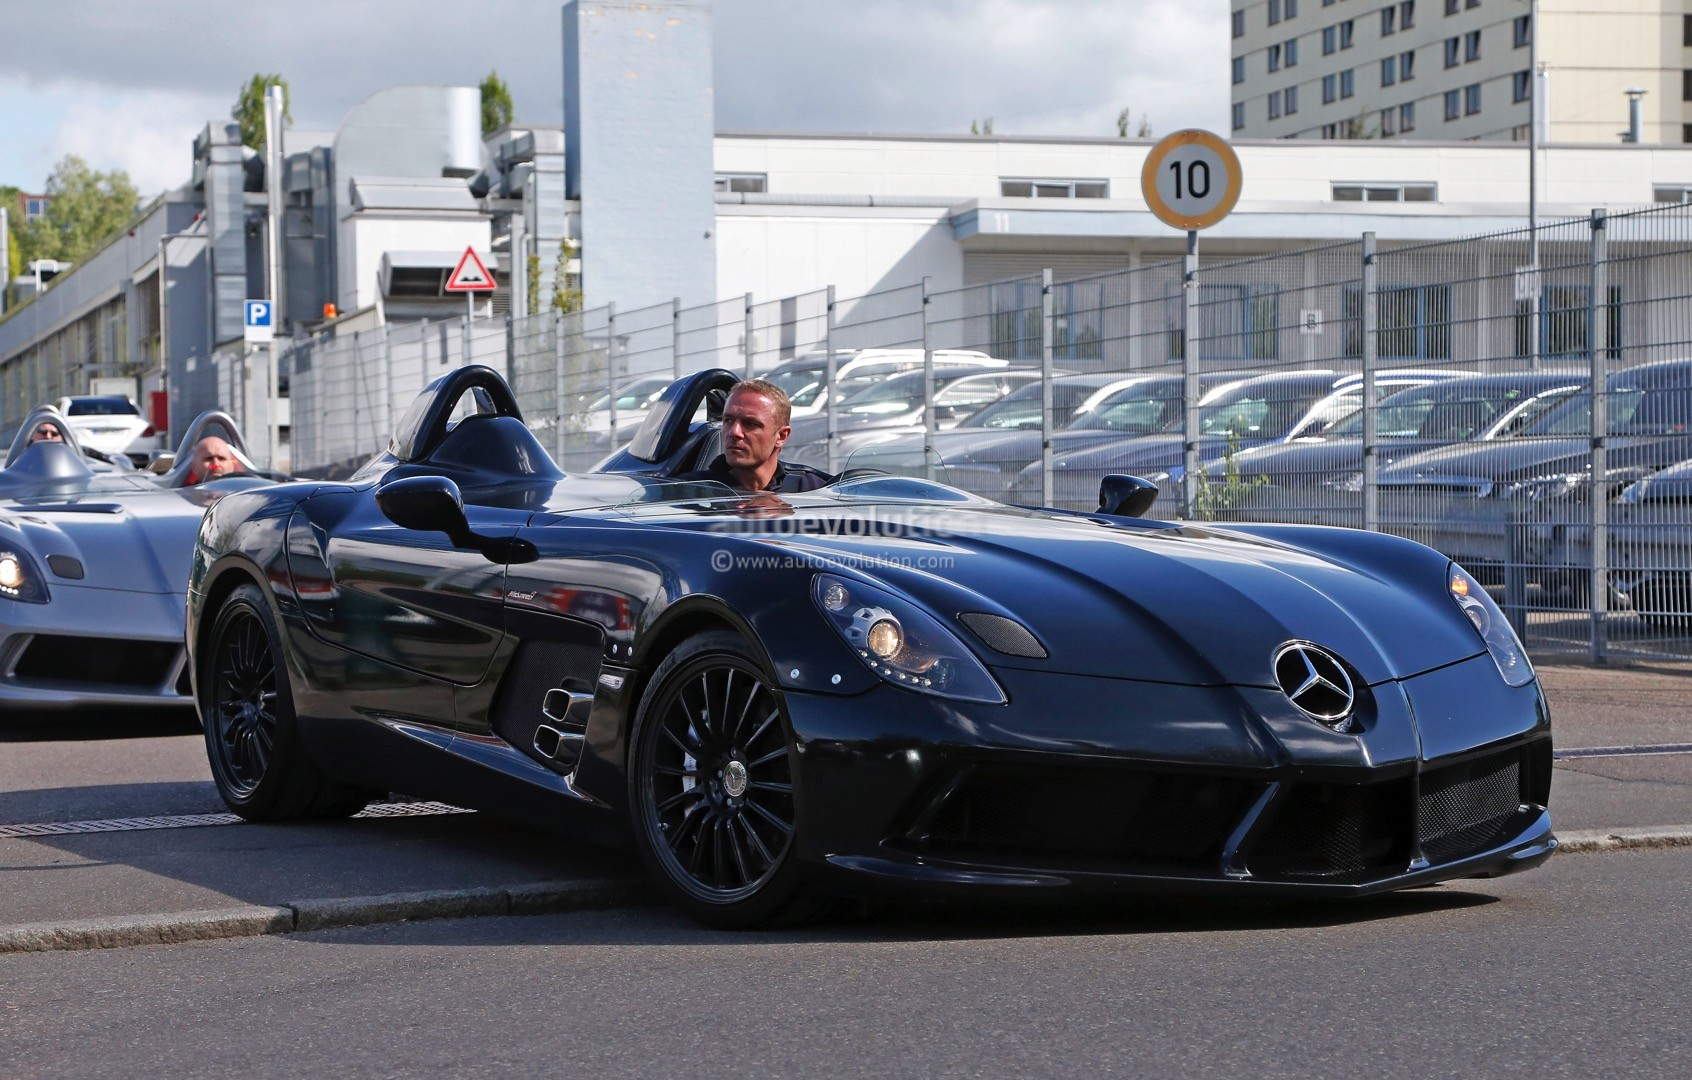 four mercedes-benz slr stirling moss models caught strolling through